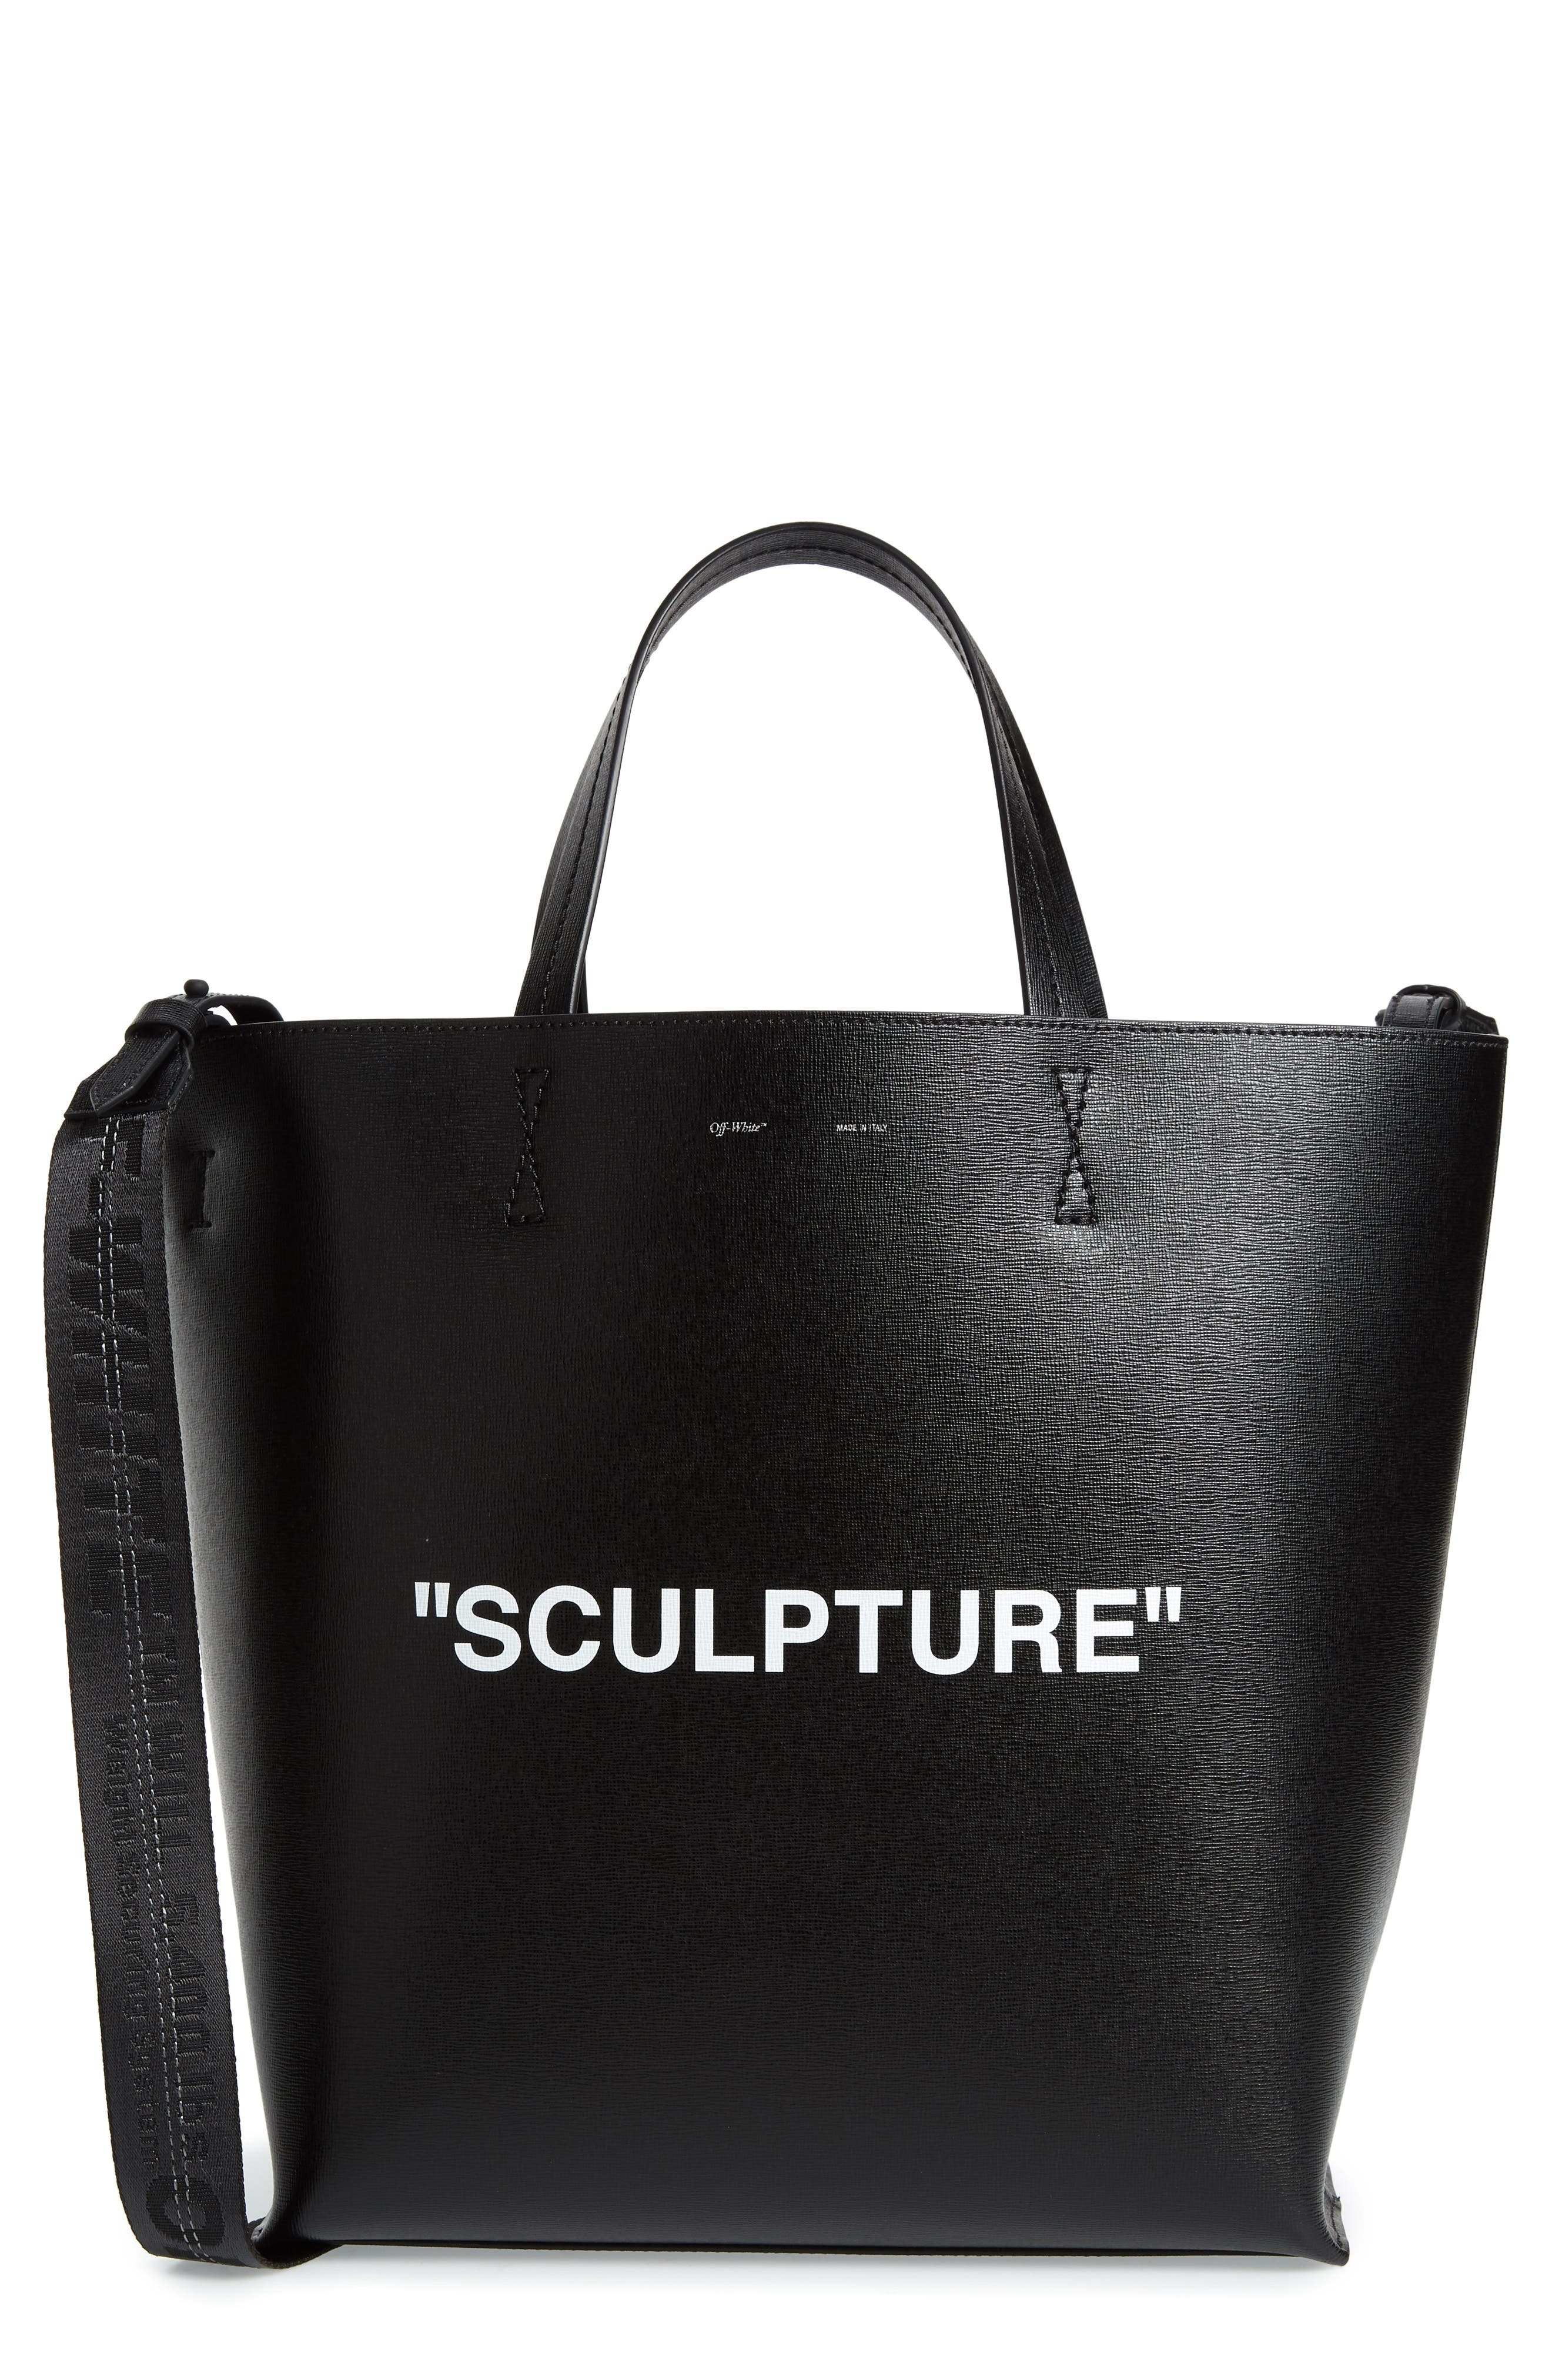 Main Image - Off-White Large Sculpture Leather Tote